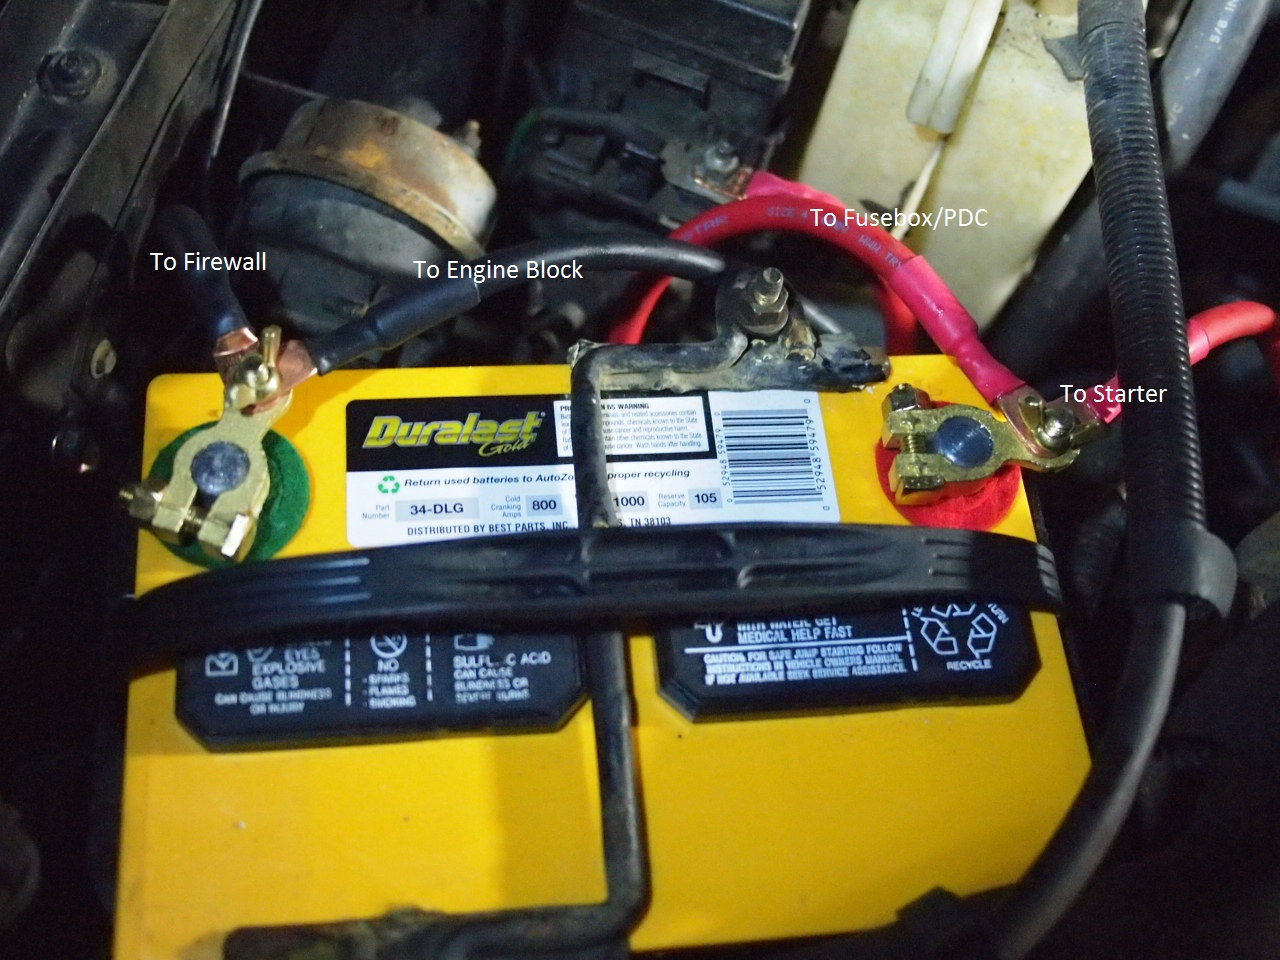 jeep xj fuse box diagram mig welder wiring cherokee 1984 to 2001 how replace battery cable - cherokeeforum